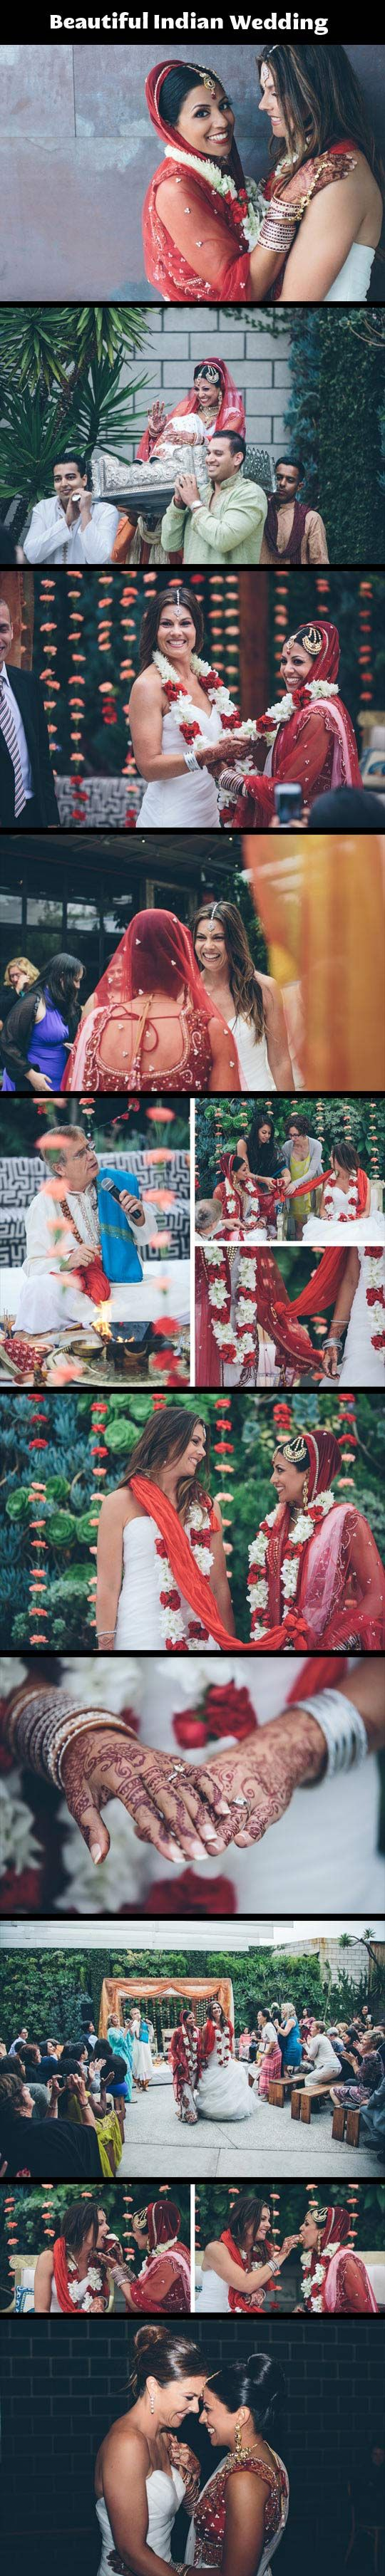 Beautiful Indian Wedding, this is one of the best things I've seen in a long time.